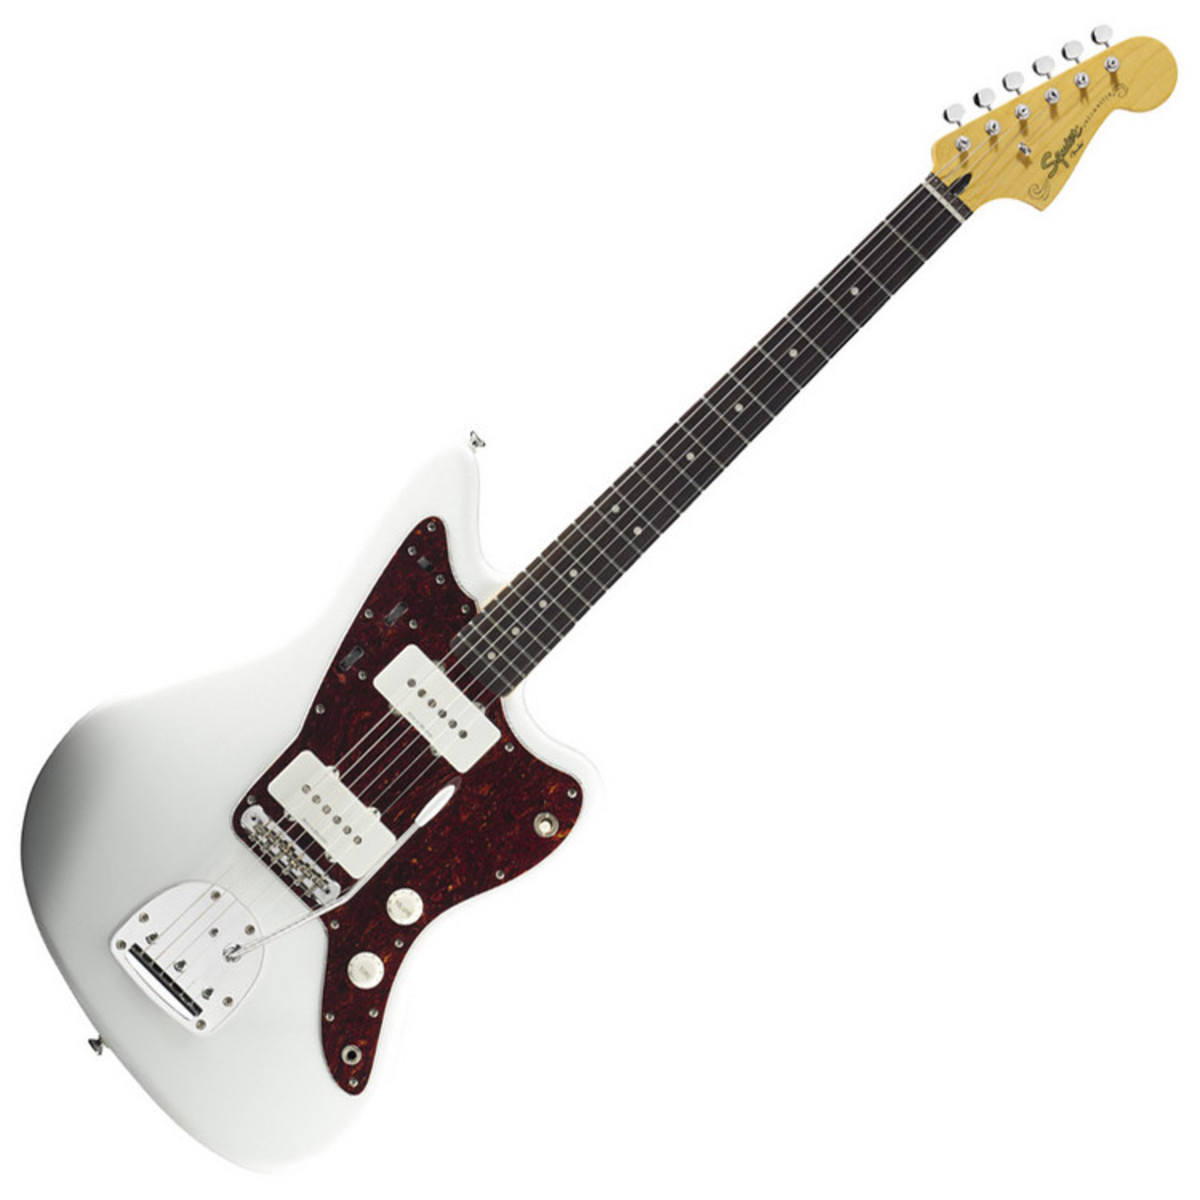 squier by fender vintage modified jazzmaster guitar olympic white at. Black Bedroom Furniture Sets. Home Design Ideas